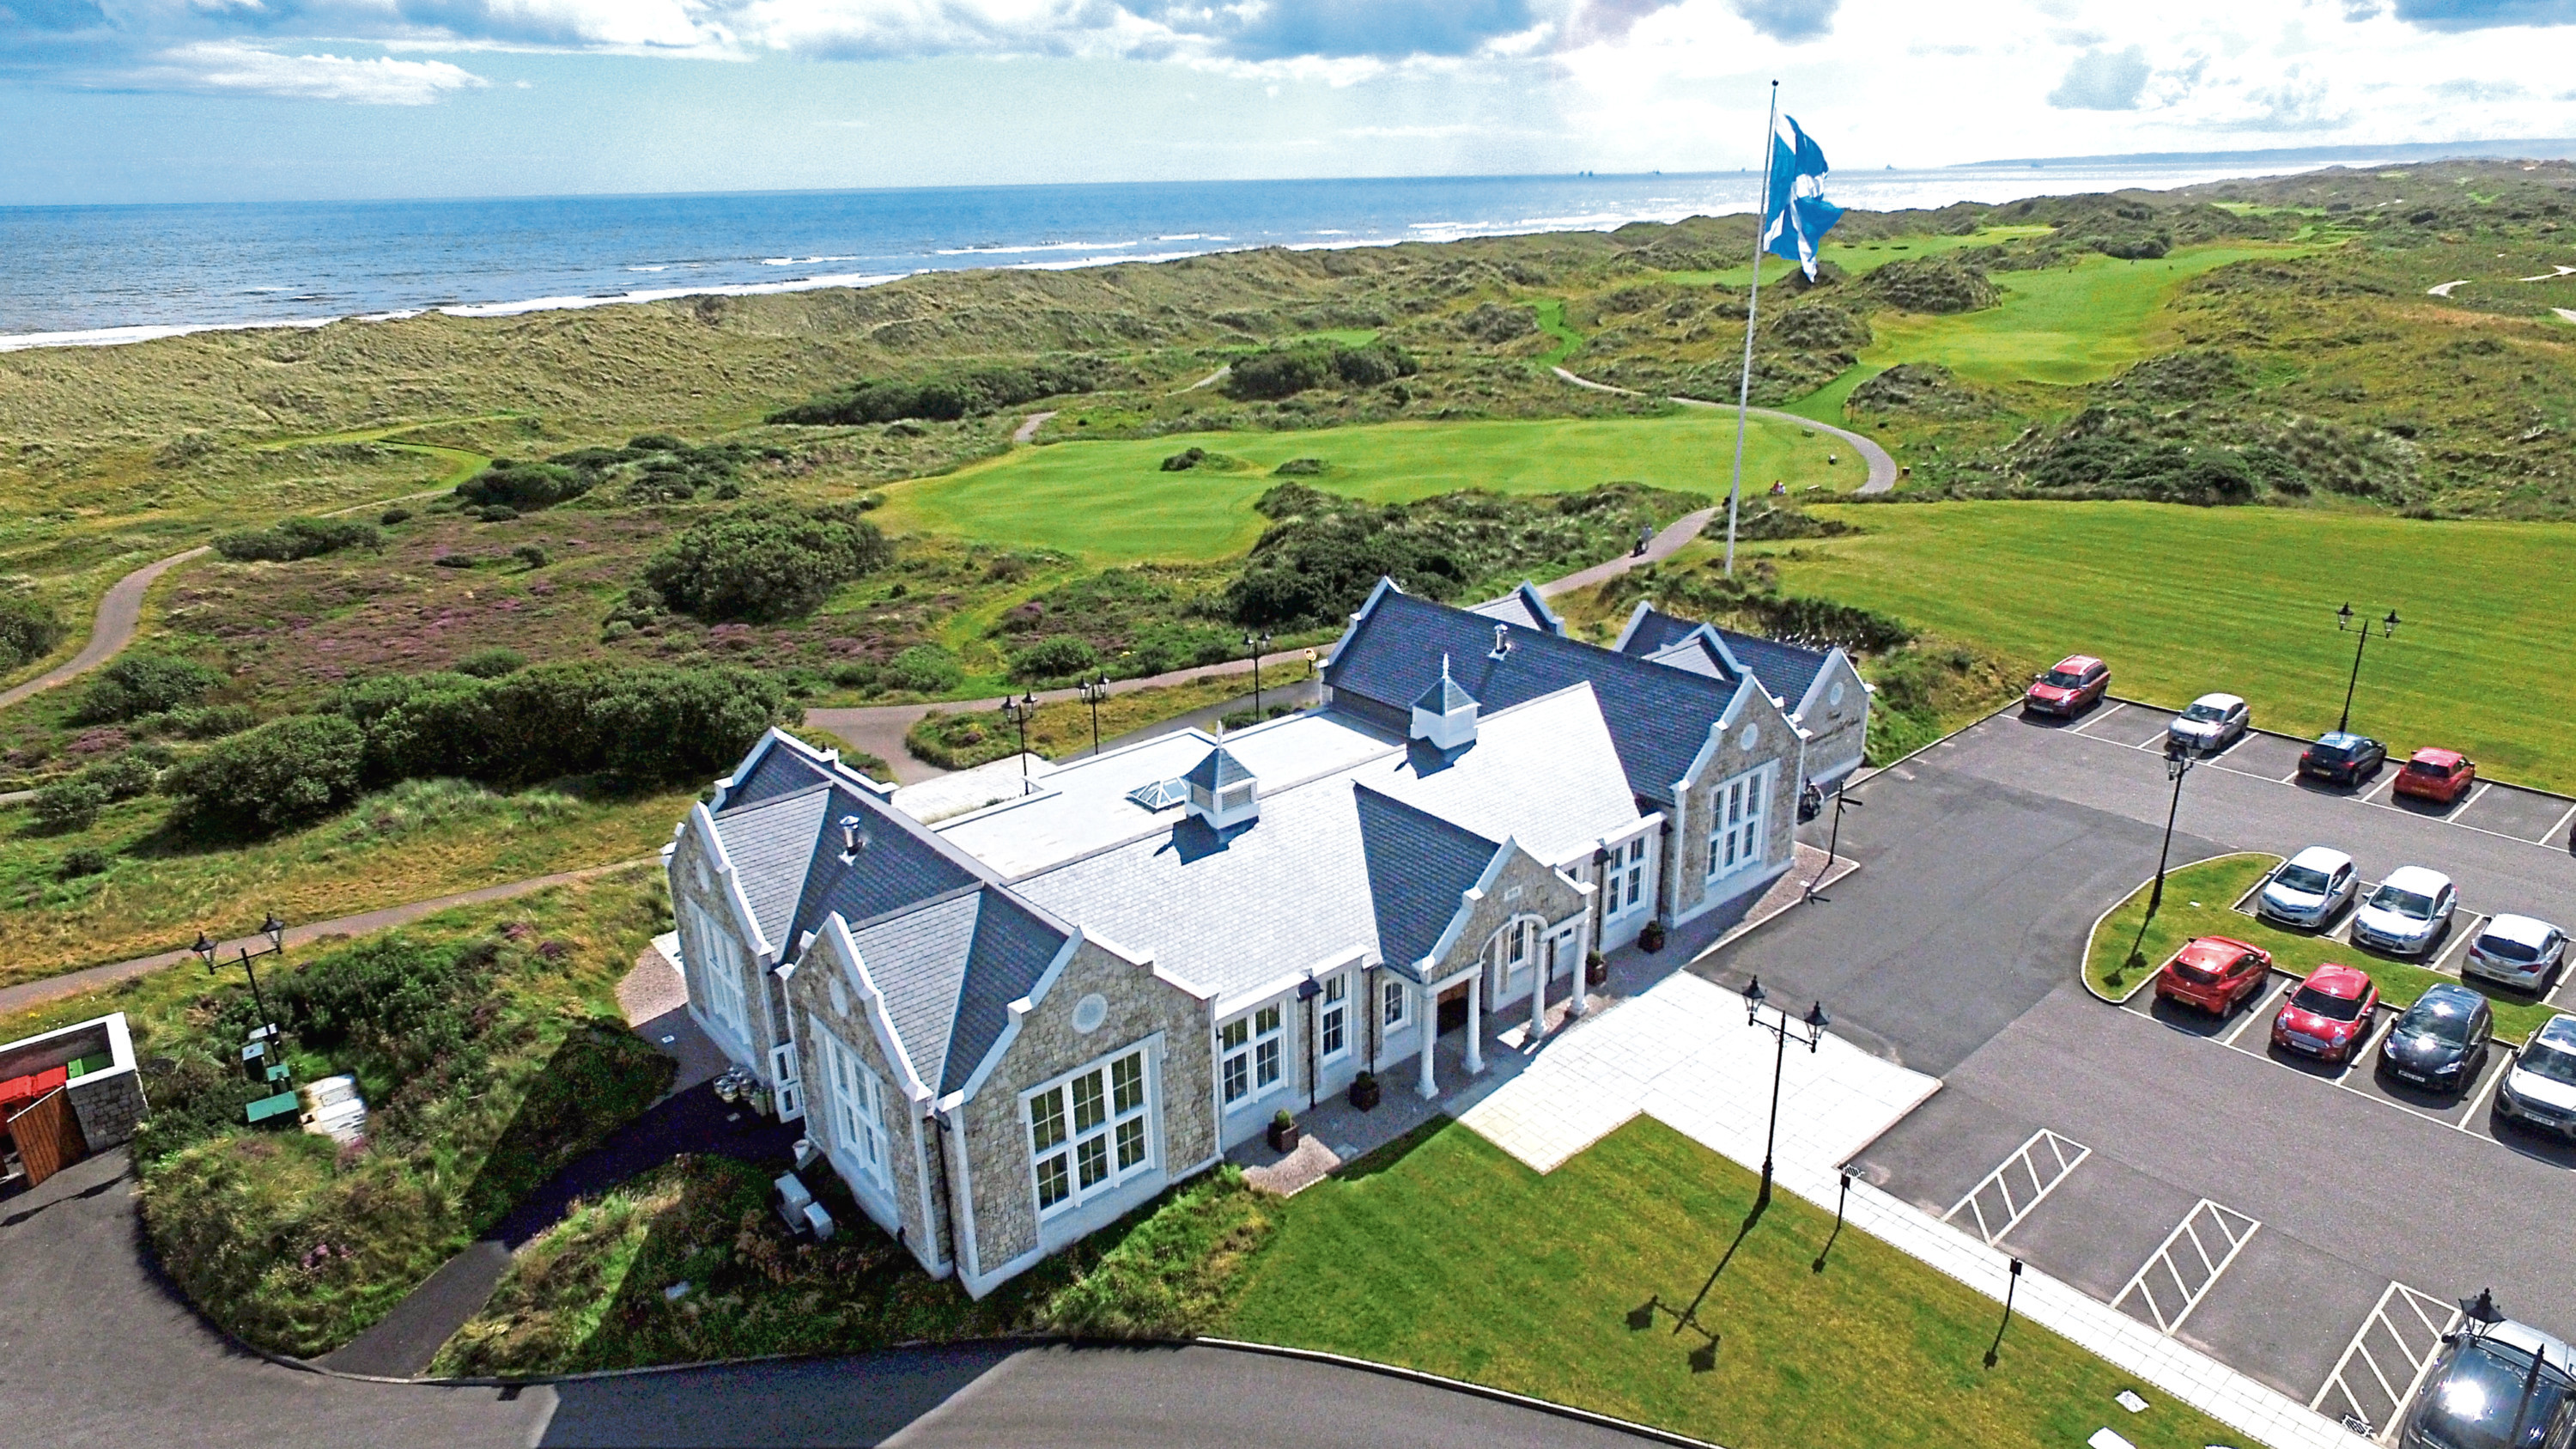 Trump International Golf Links has now shut temporarily in accordance to the Government's new lockdown measures